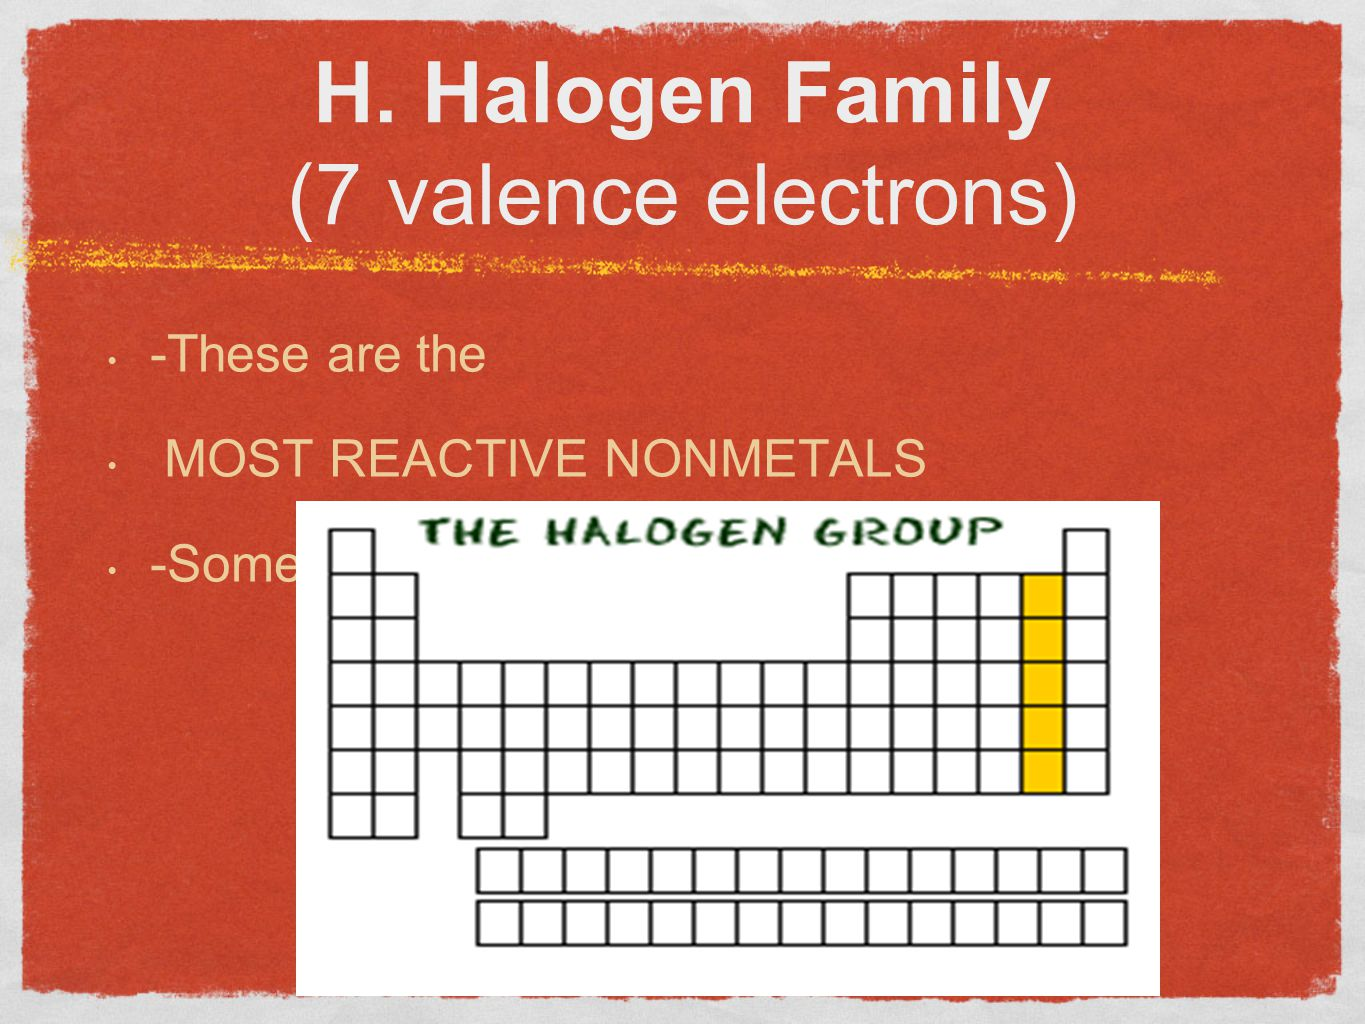 H. Halogen Family (7 valence electrons)